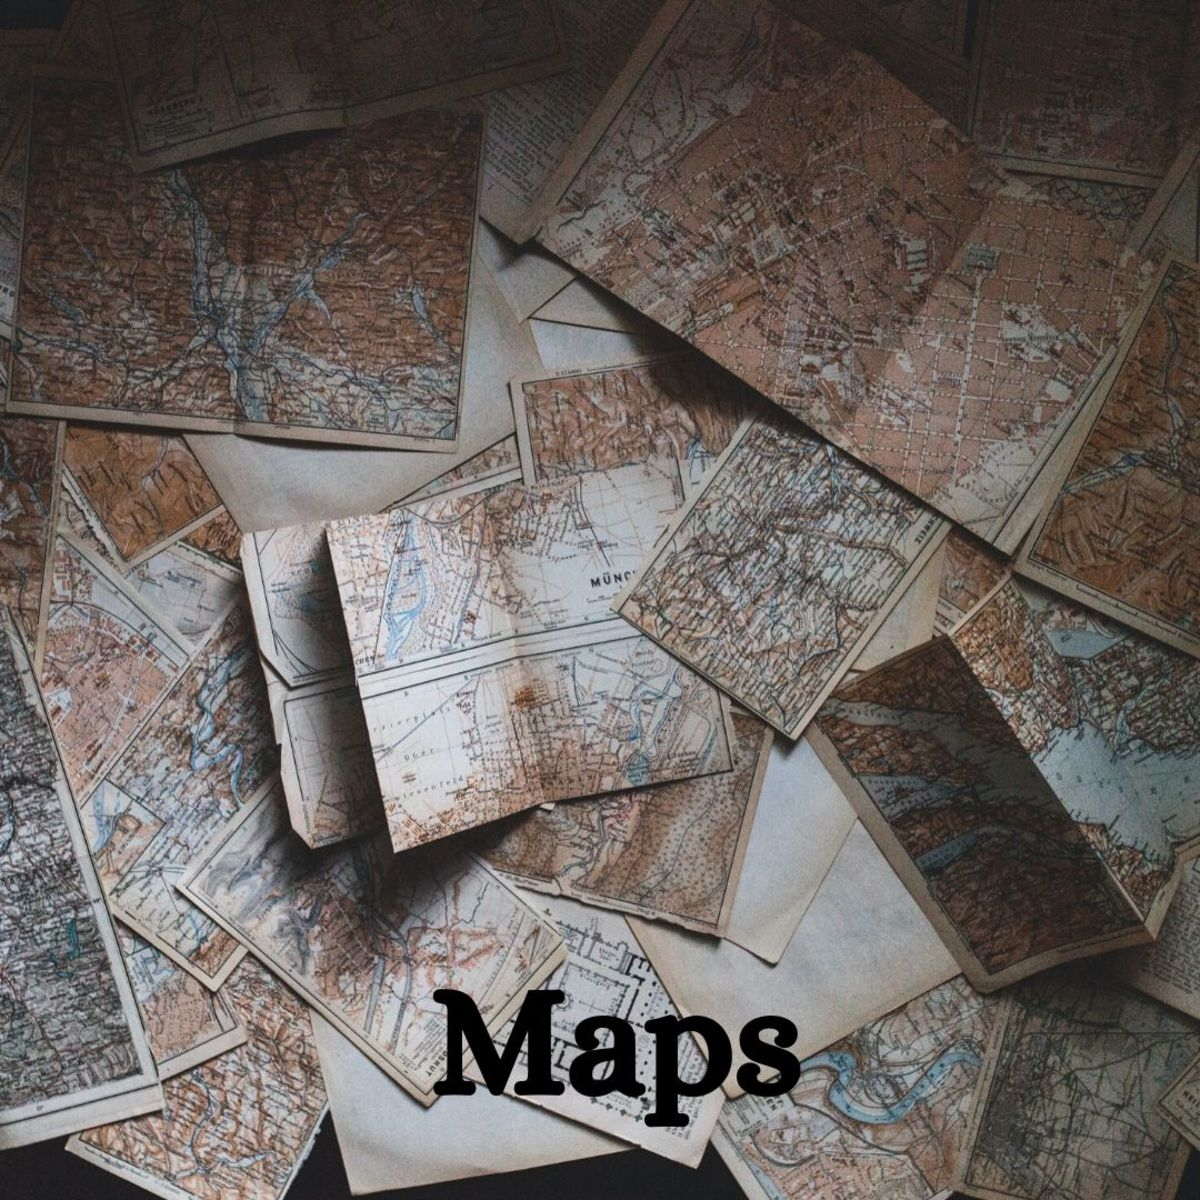 Maps are super fun and interesting. Plus, the more you collect, the better your view of the world!